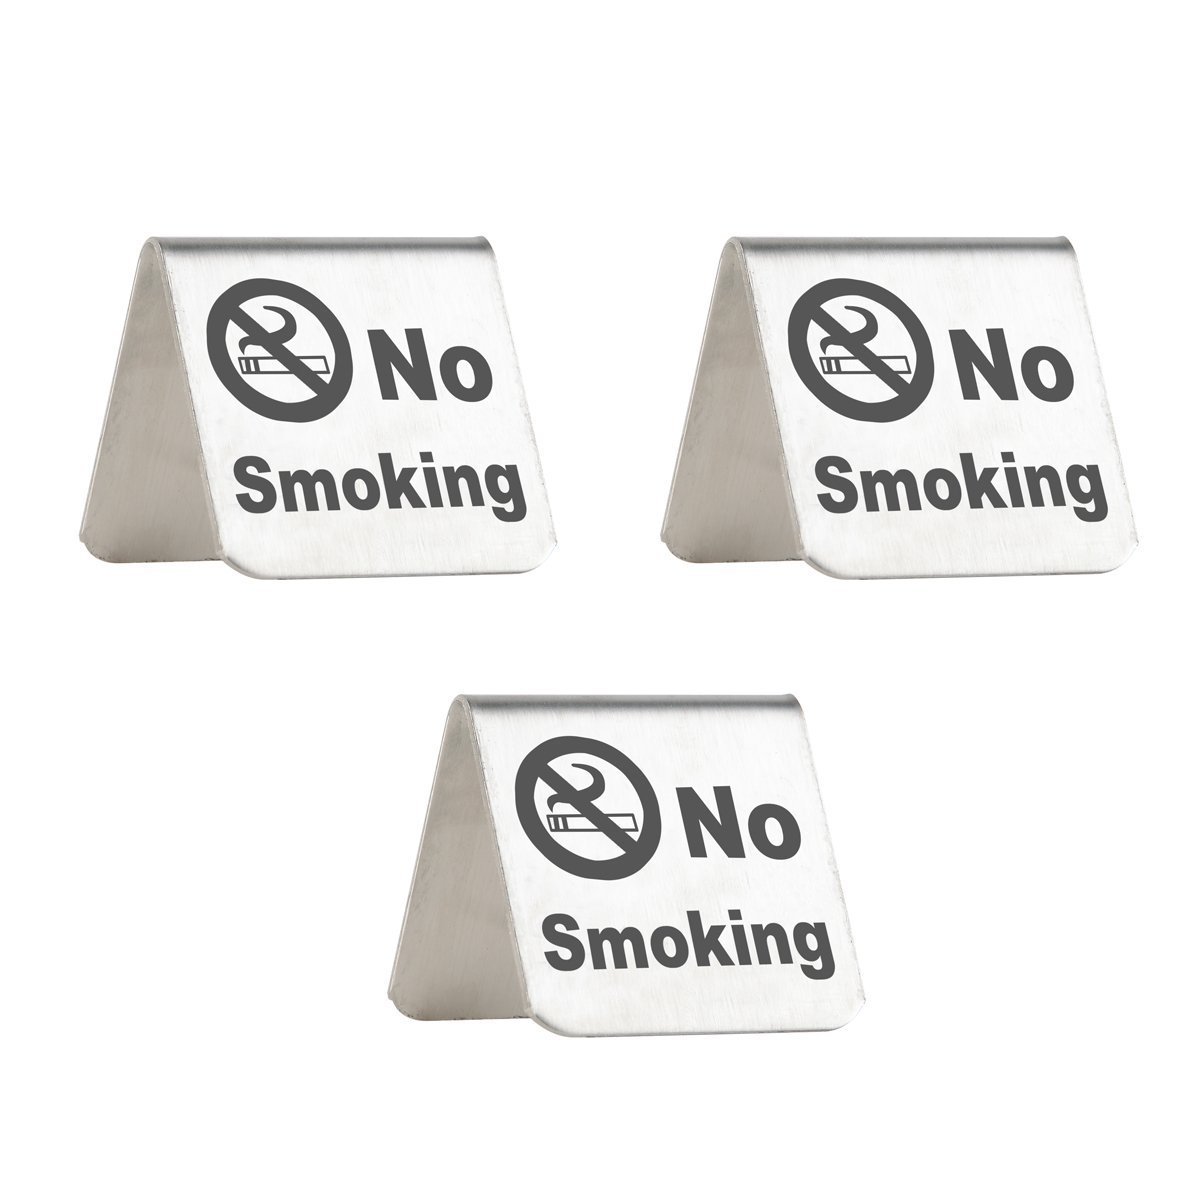 No Smoking Sign - Brushed Stainless Steel Free Standing Table Top Tent Compliance Signs - Double Sided - 2 by 2 Inch - Set of 3 by OKOMATCH